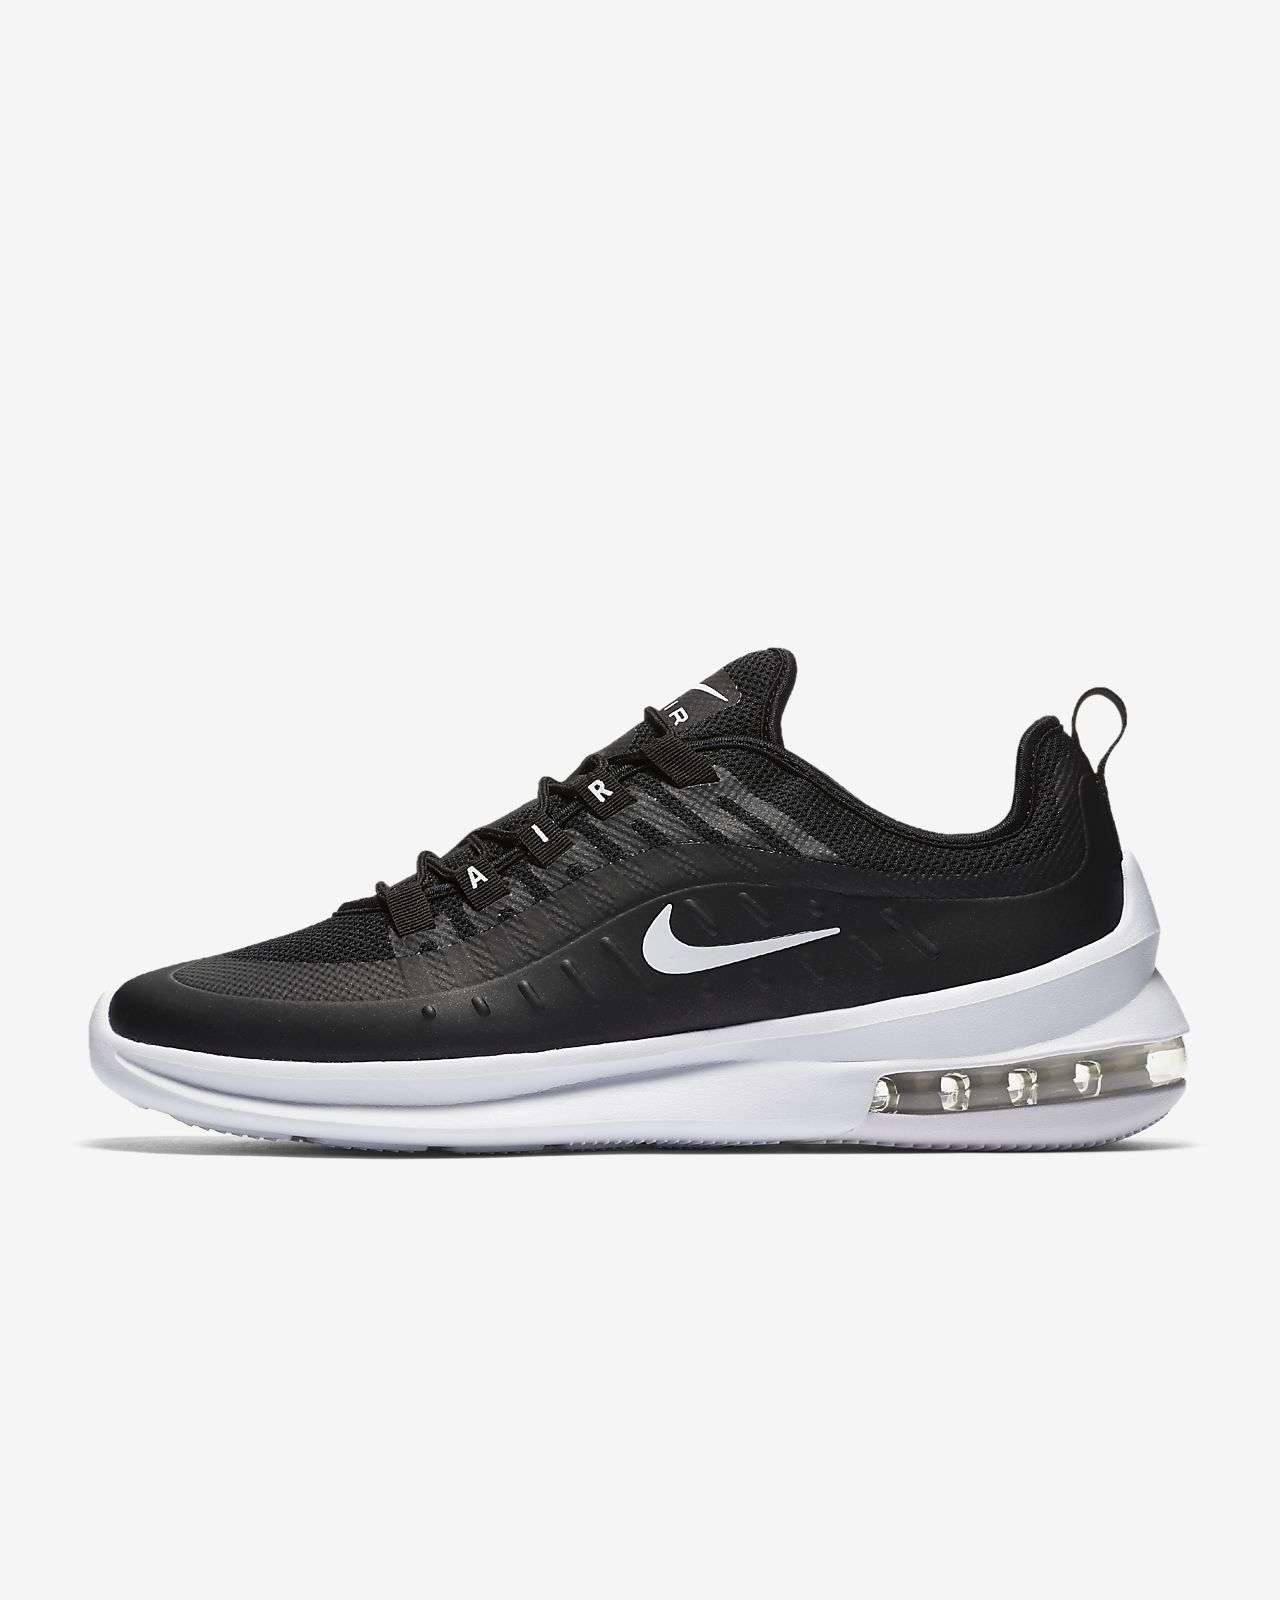 half off ecff1 9f528 ... Nike Air Max Axis Men s Shoe